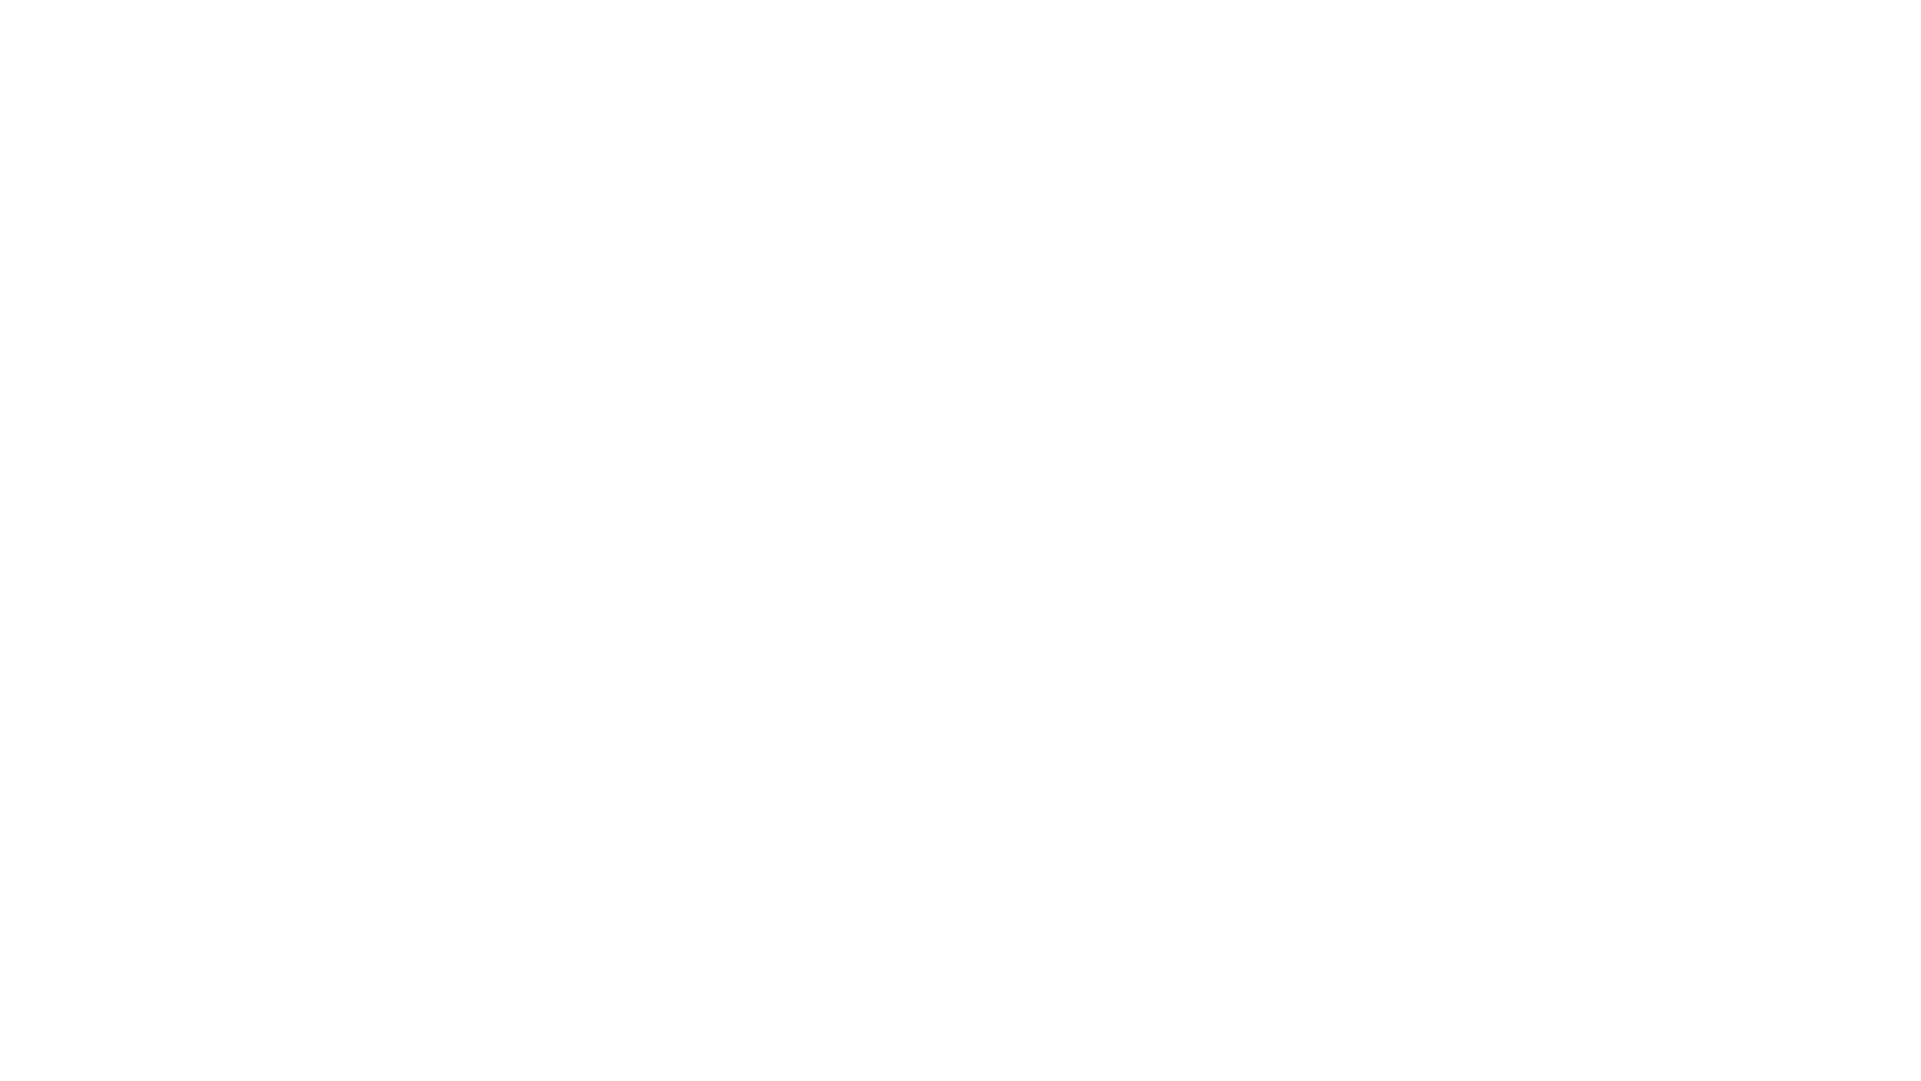 Black Faculty Collective